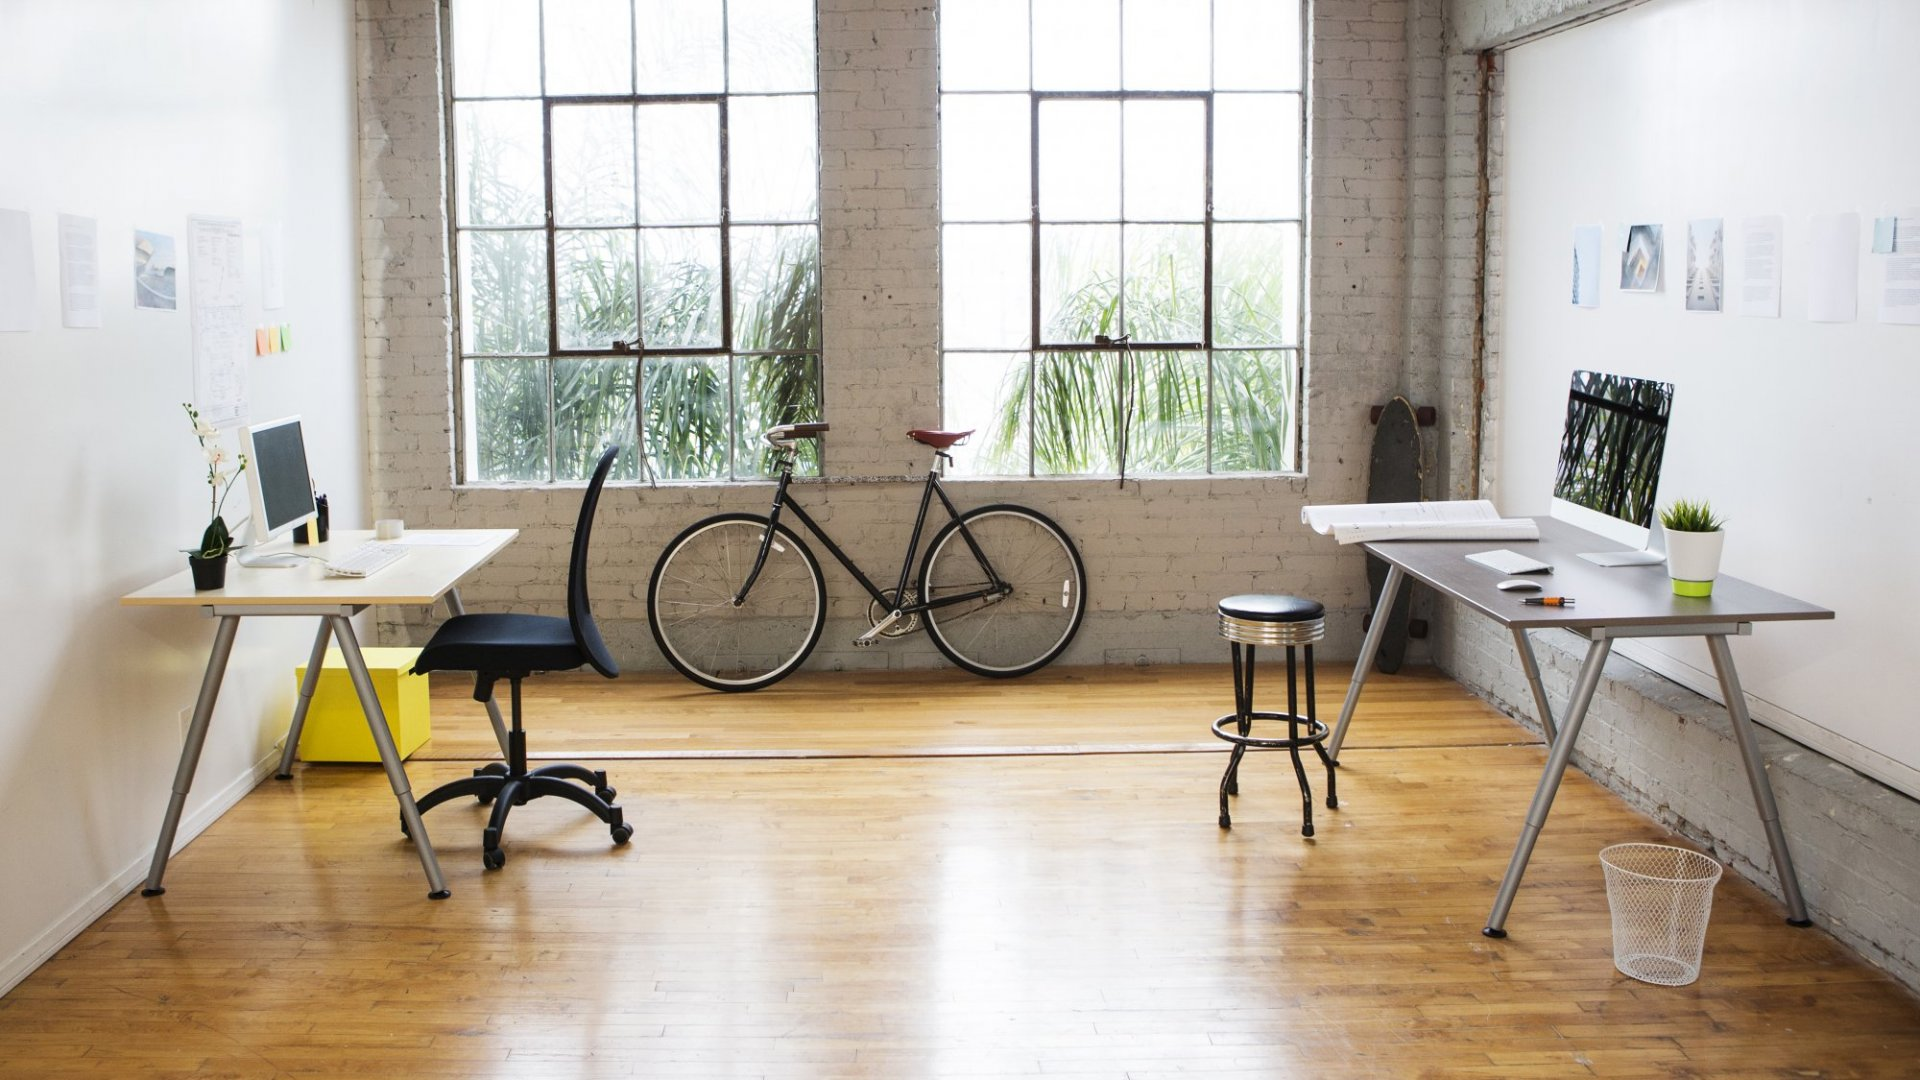 9 of the Most Common Mistakes That Will Tank a Startup